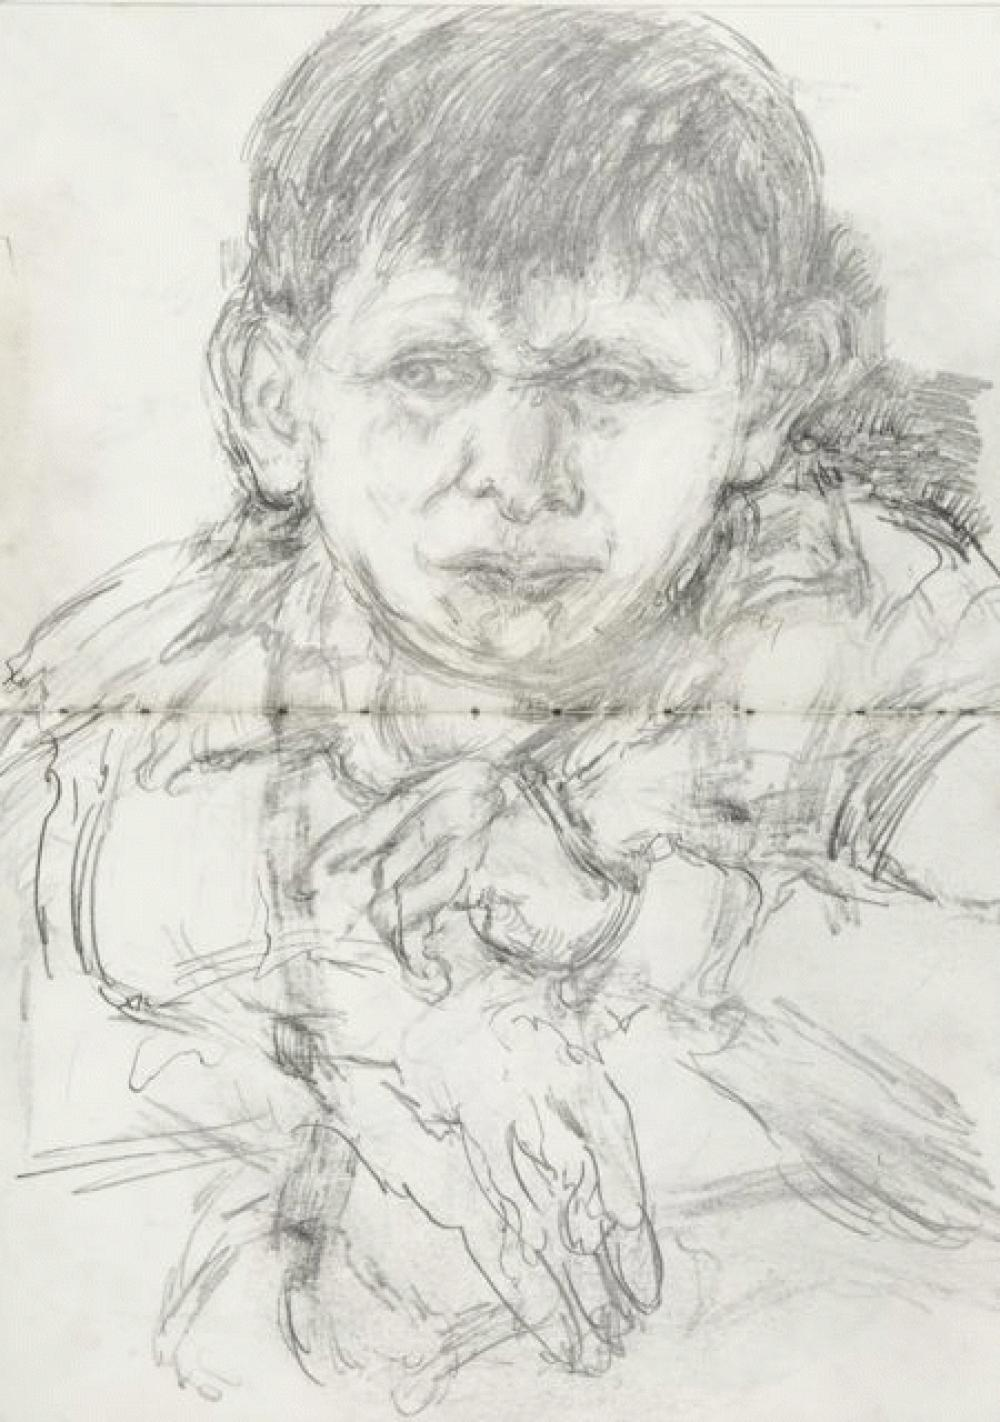 From L'Arche - Pencil on paper.